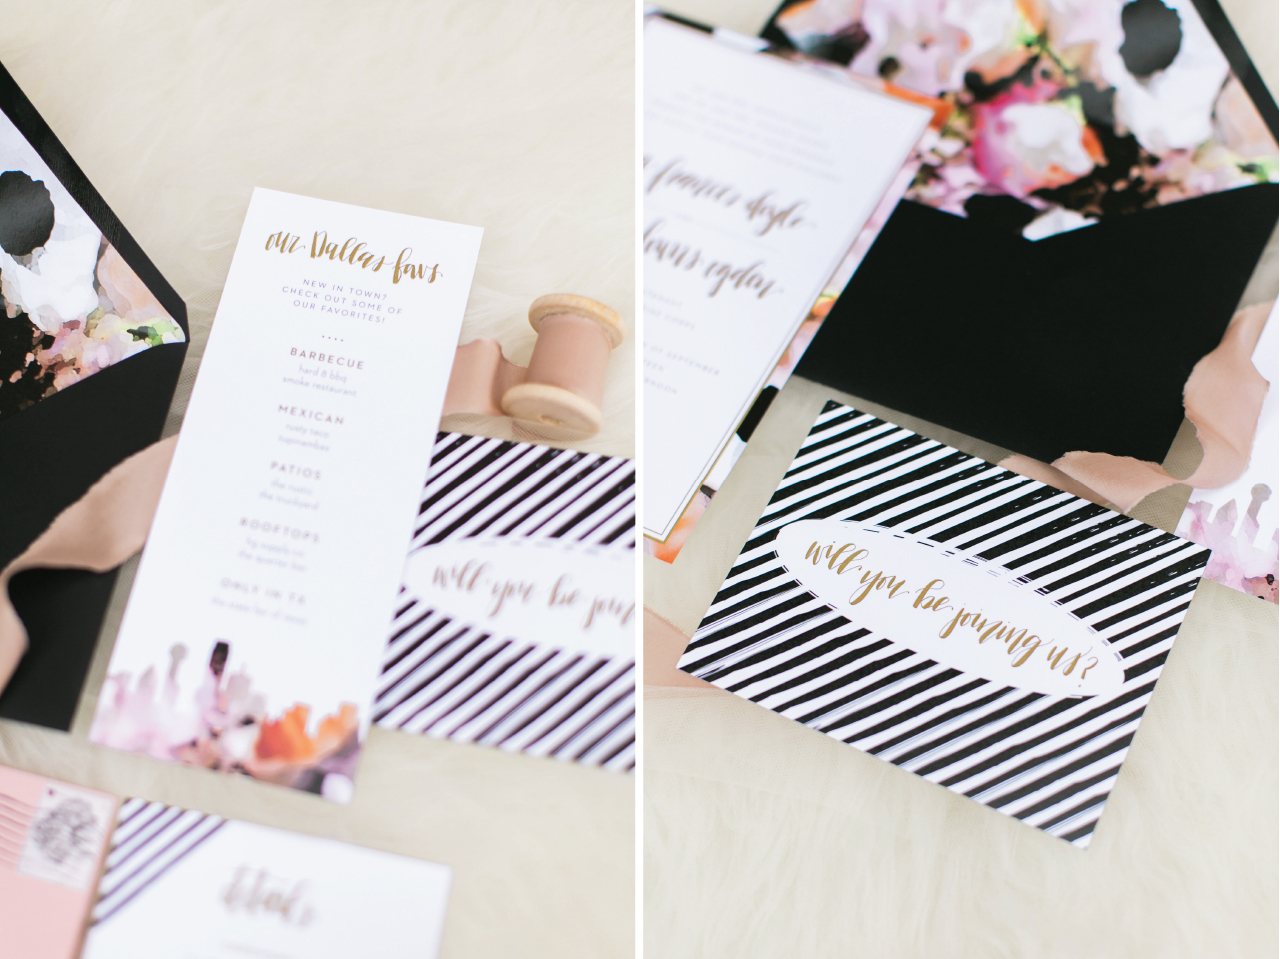 A fun way to incorporate some of the bride and grooms personality into the wedding invitation suite is to add a list of places that the bride and groom love! On ours, we included some restaurants, bars, and favorite places to go in Dallas!